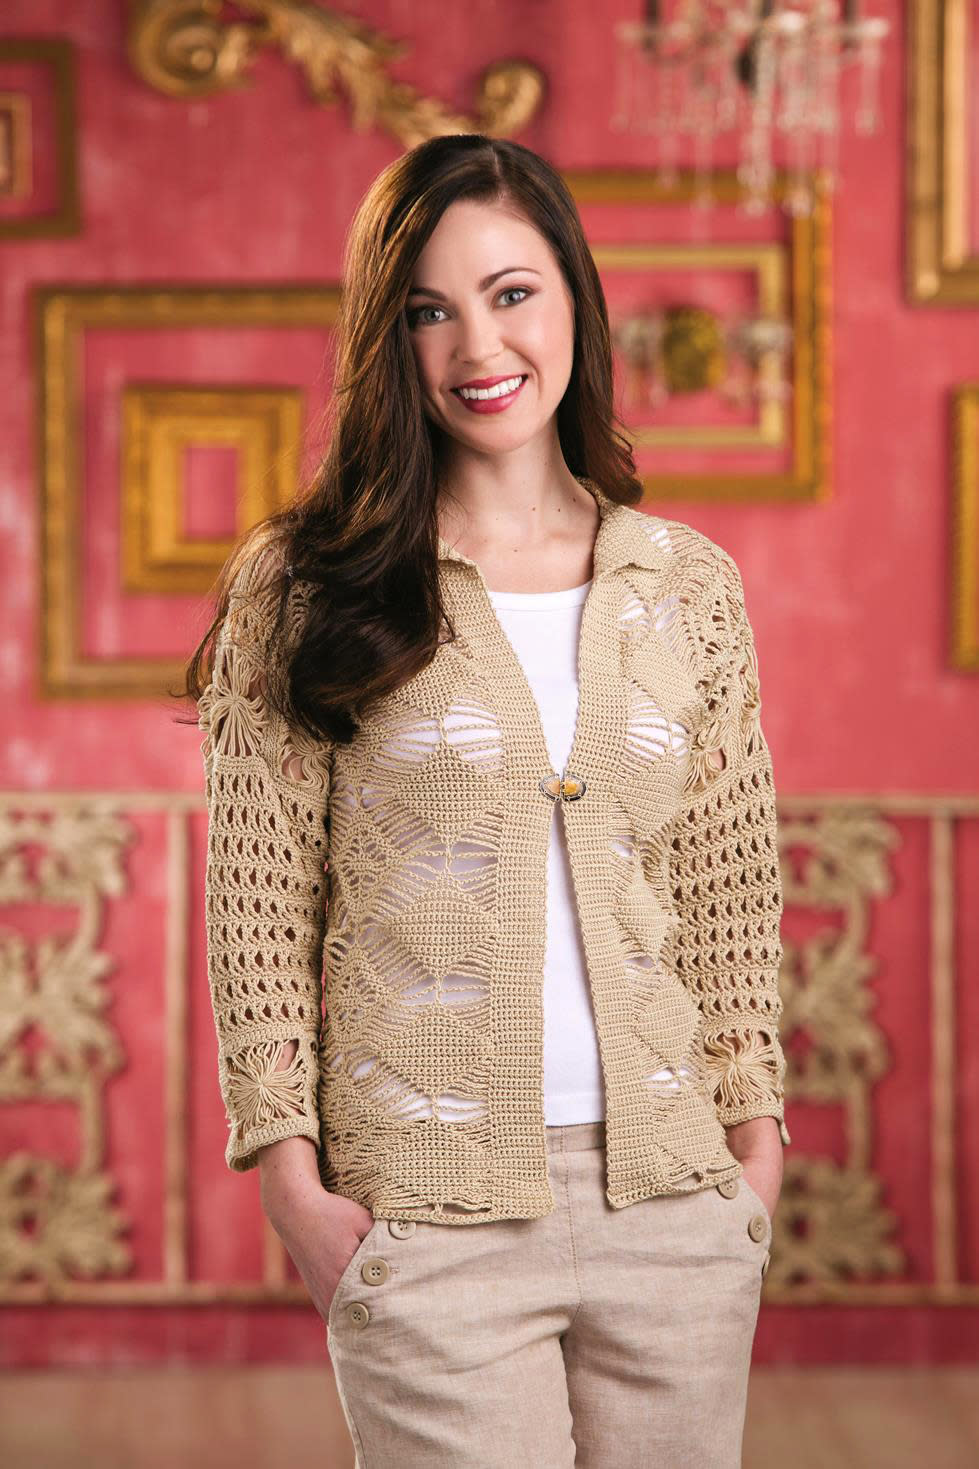 """This publicity photo provided by """"Crochet!"""" magazine (Summer 2013) published by Annie's shows the openwork pattern of the Macrame Cardi, inspired by the retro craft but retooled for modern tastes. Today's crochet is leaner and trendier than that of the 1960s and '70s, from which we know it for its bulky, acrylic yarns and Afghan blankets. (AP Photo/Crochet!, Matthew Owen)"""